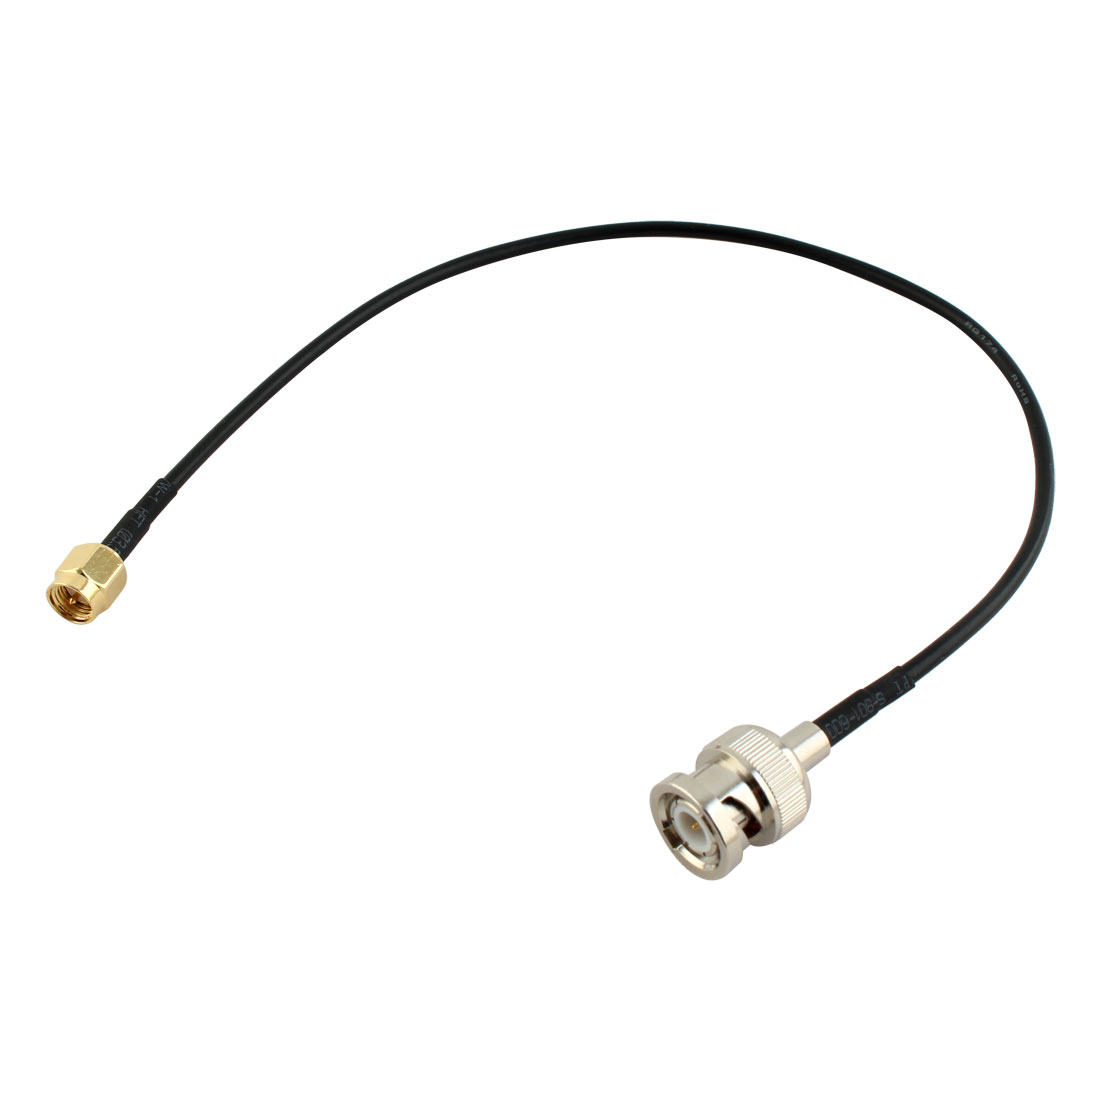 Metal 12.8 Inch RF Pigtail Cable SMA Male to BNC Male Adapter Connector